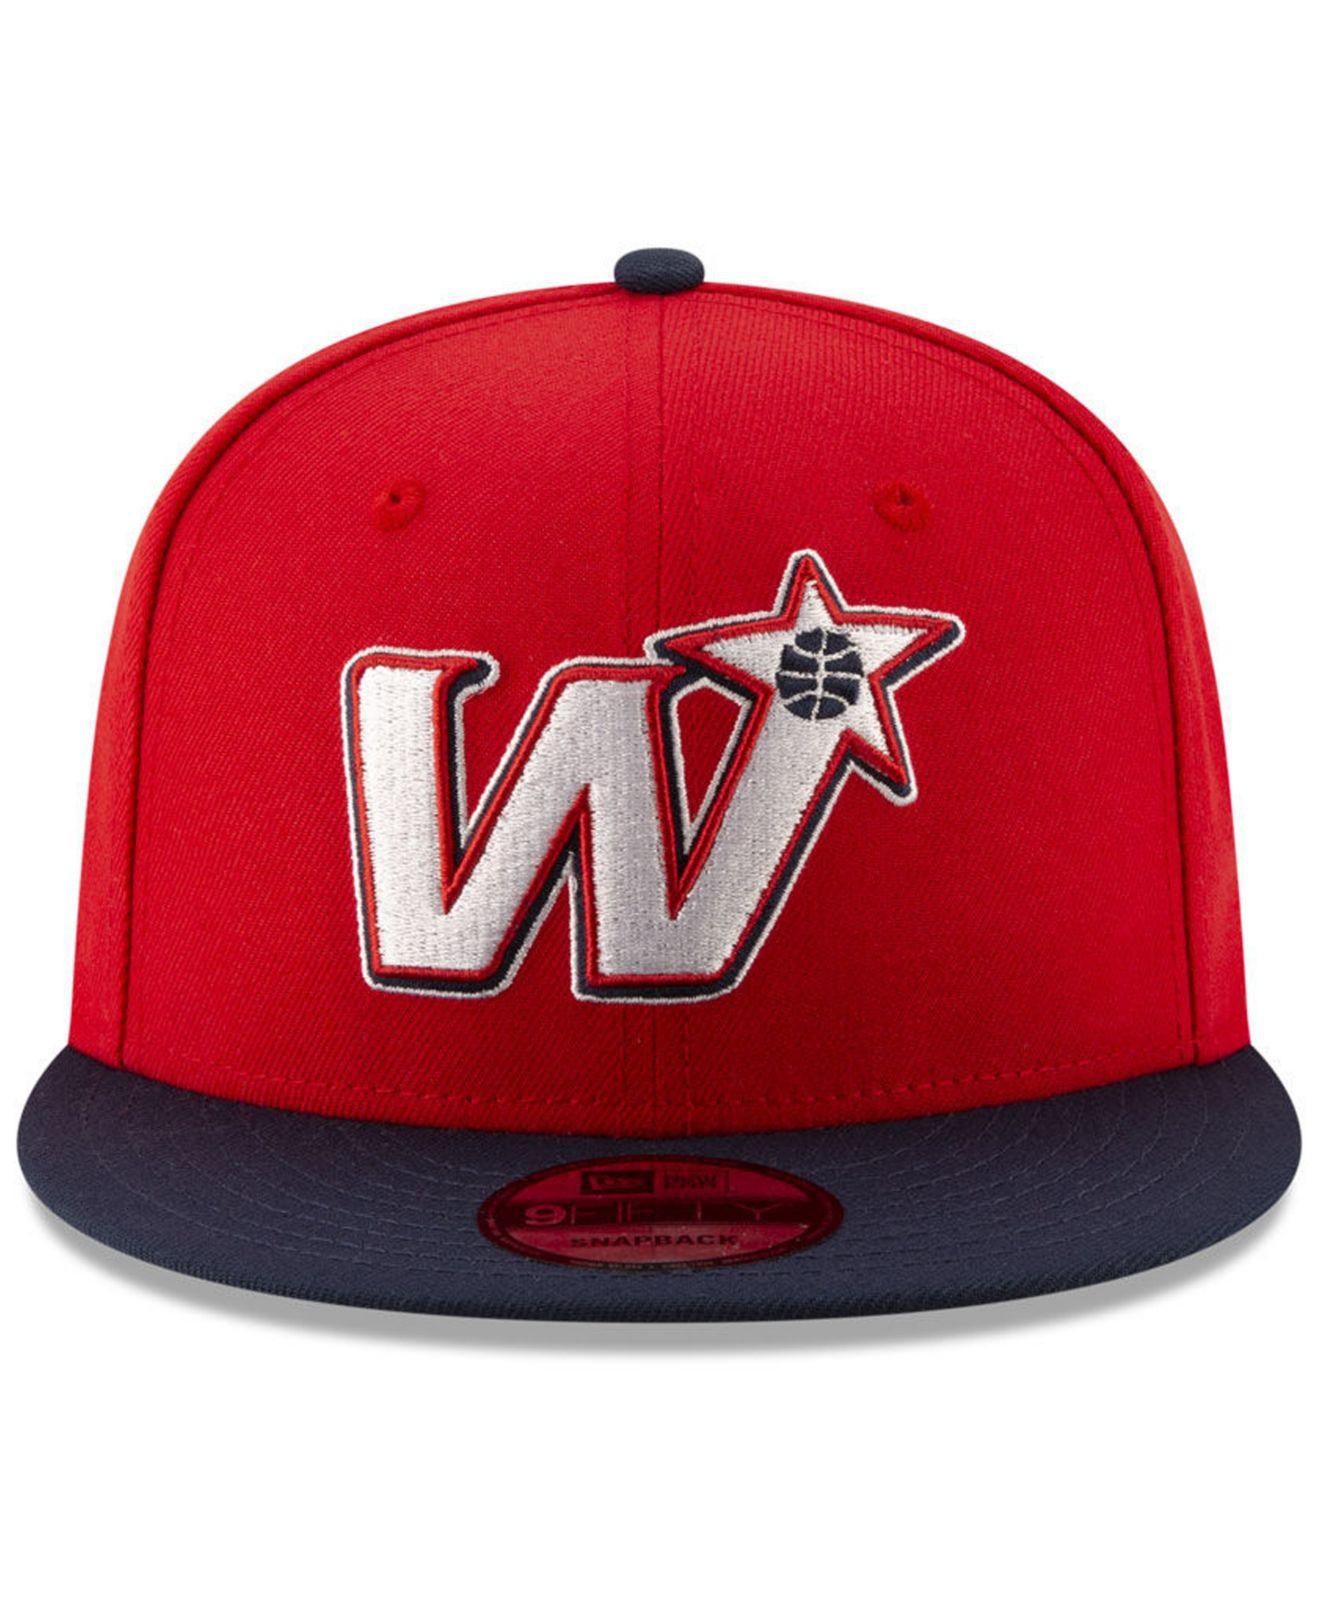 quality design a243e 66ad7 ... spain lyst ktz washington wizards light city combo 9fifty snapback cap  in red for men ad74f